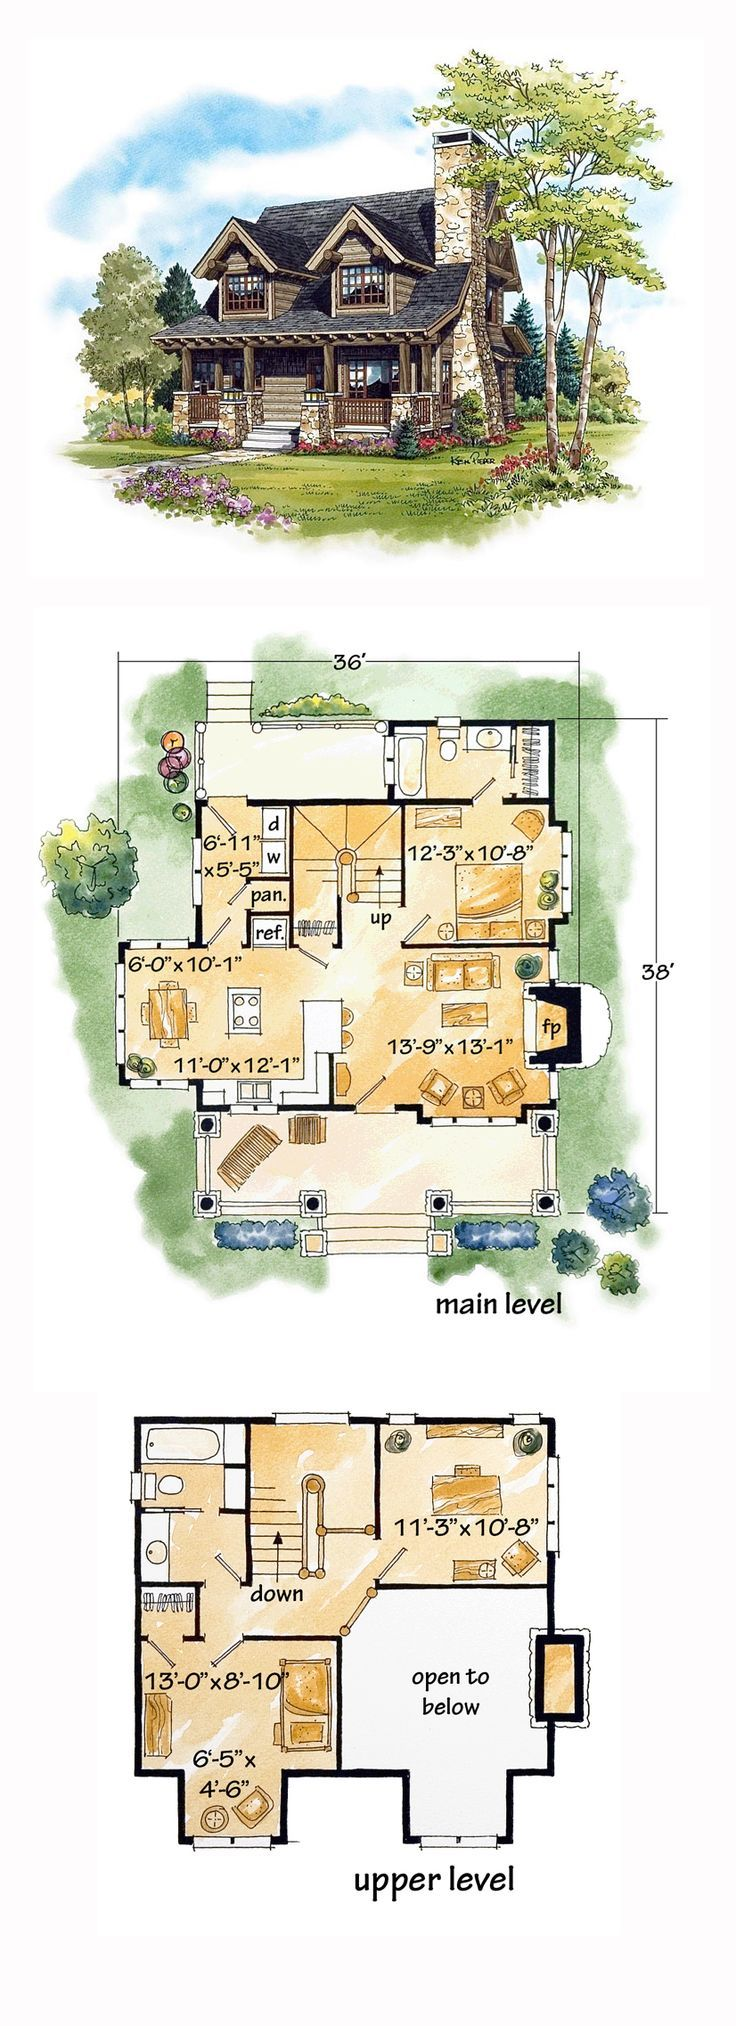 Log house plan total living area sq ft bedrooms and bathroo also vision board pinterest plans rh